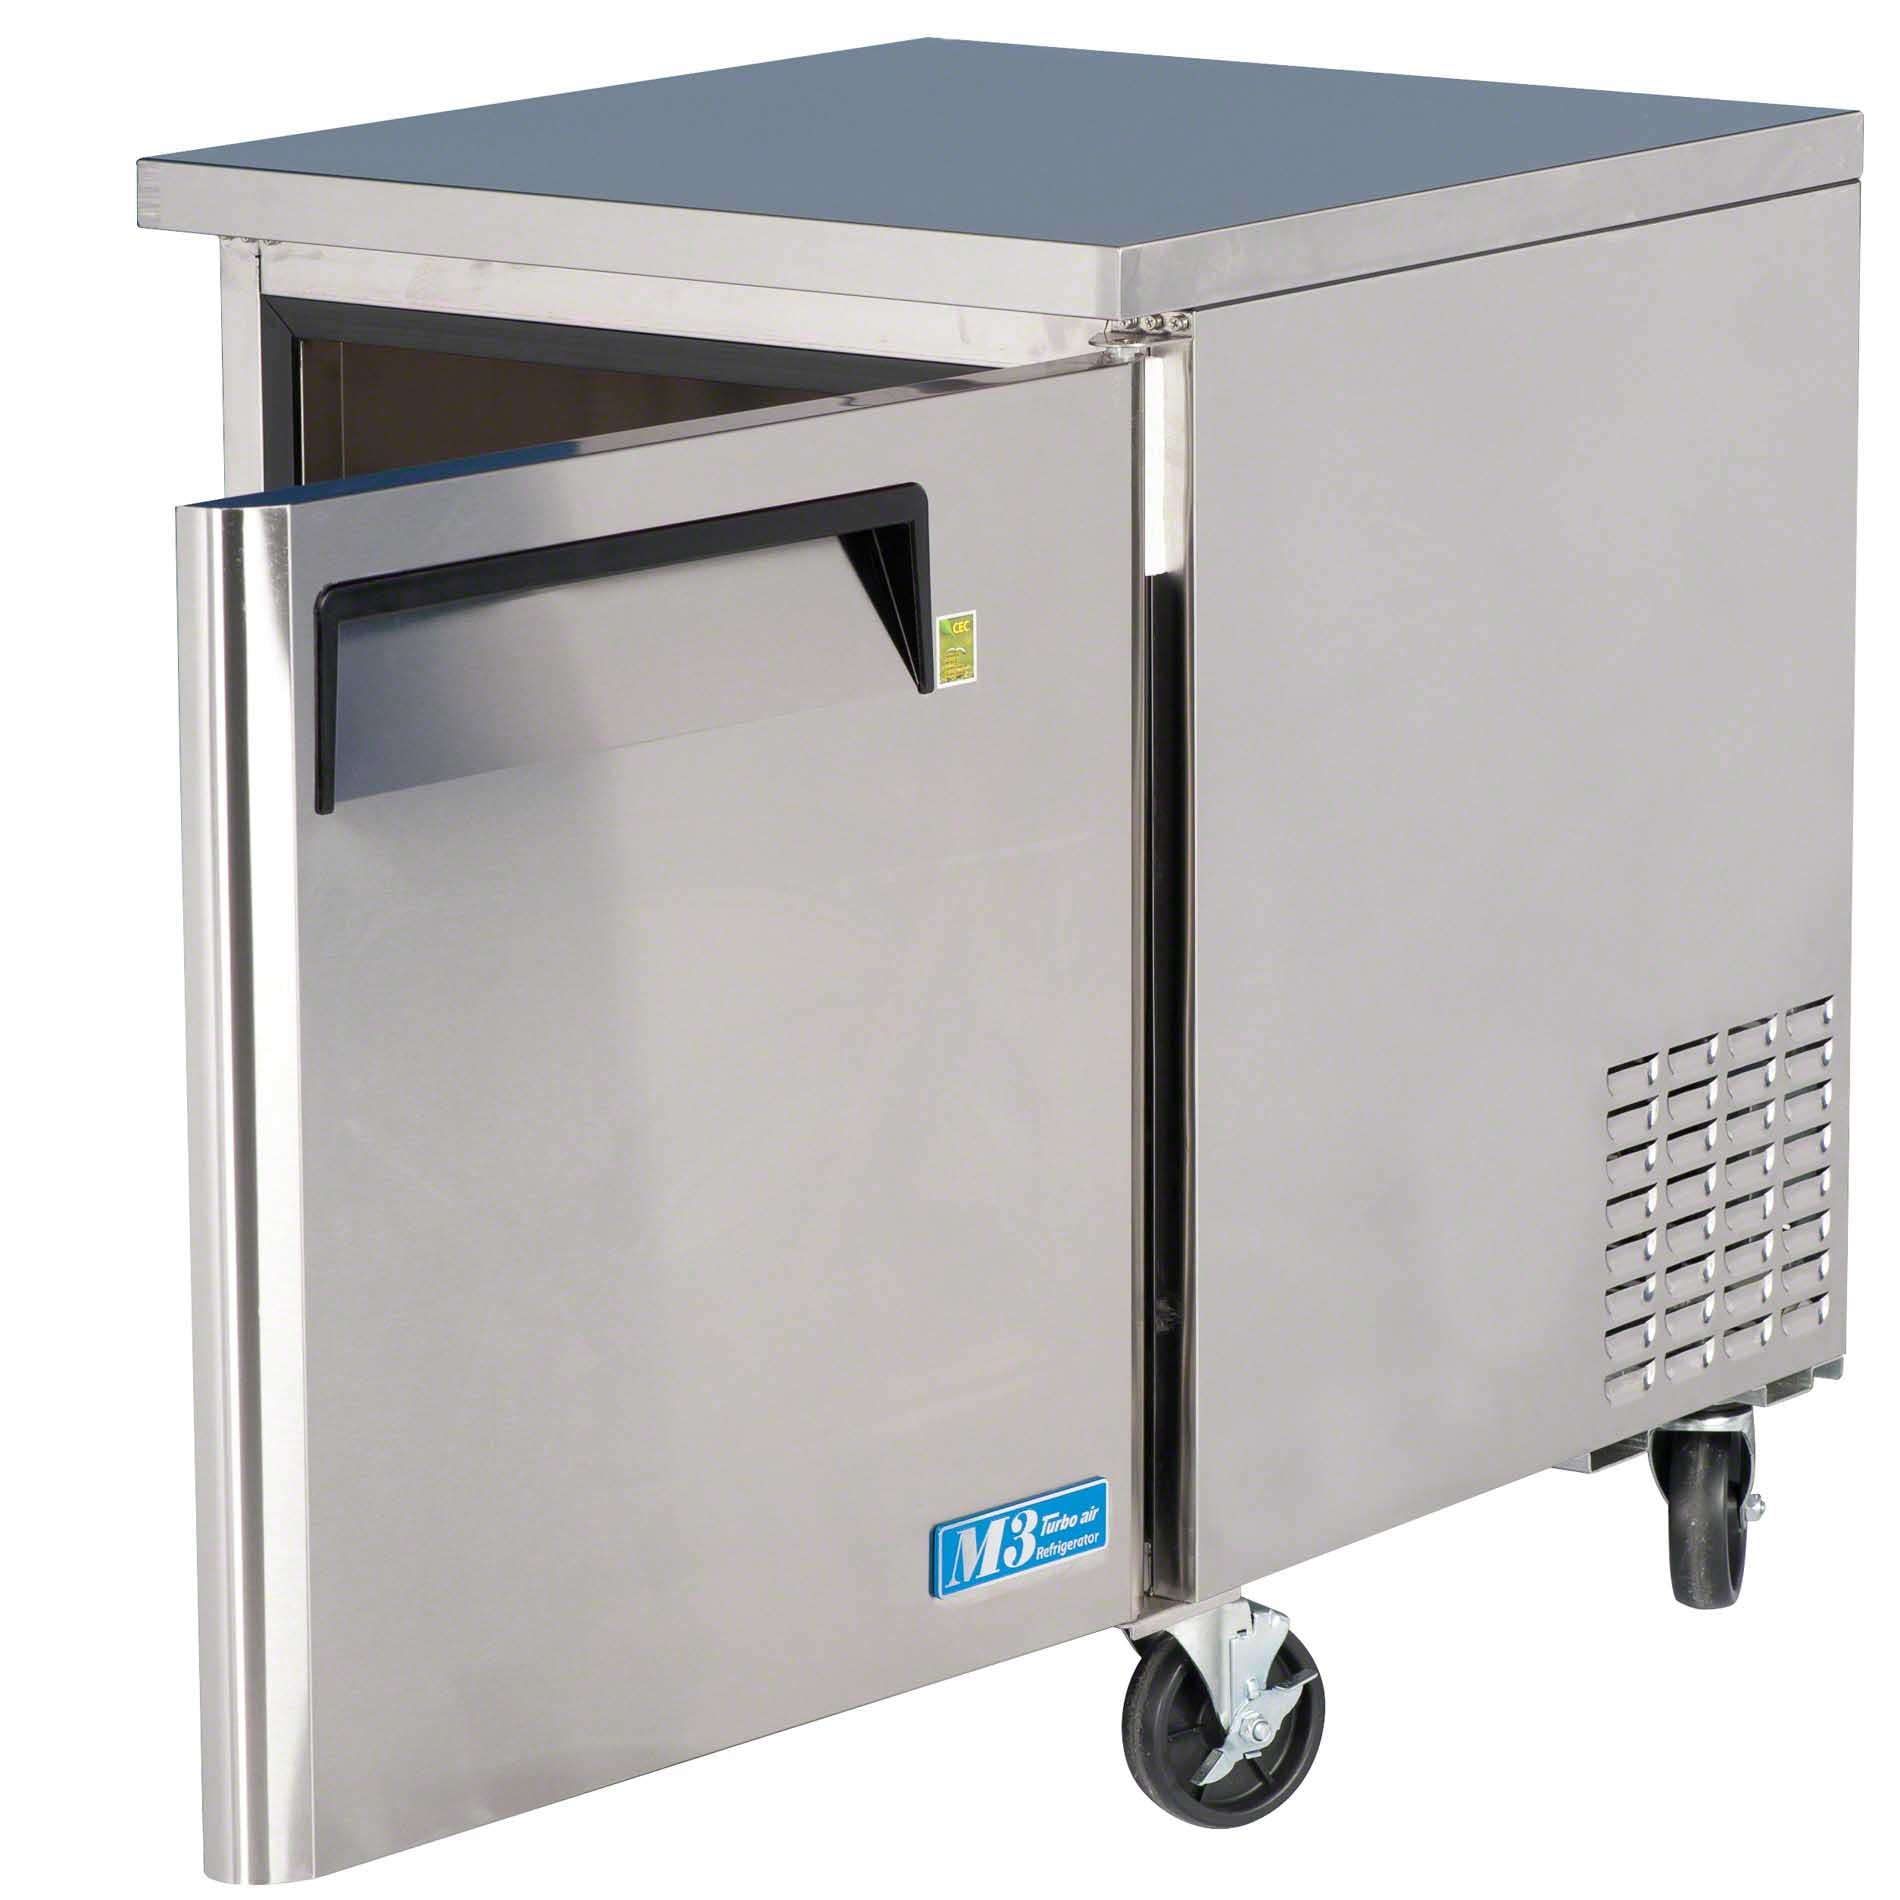 "Turbo Air - MUR-28 28"" Undercounter Refrigerator – M3 Series Commercial refrigerator sold by Food Service Warehouse"